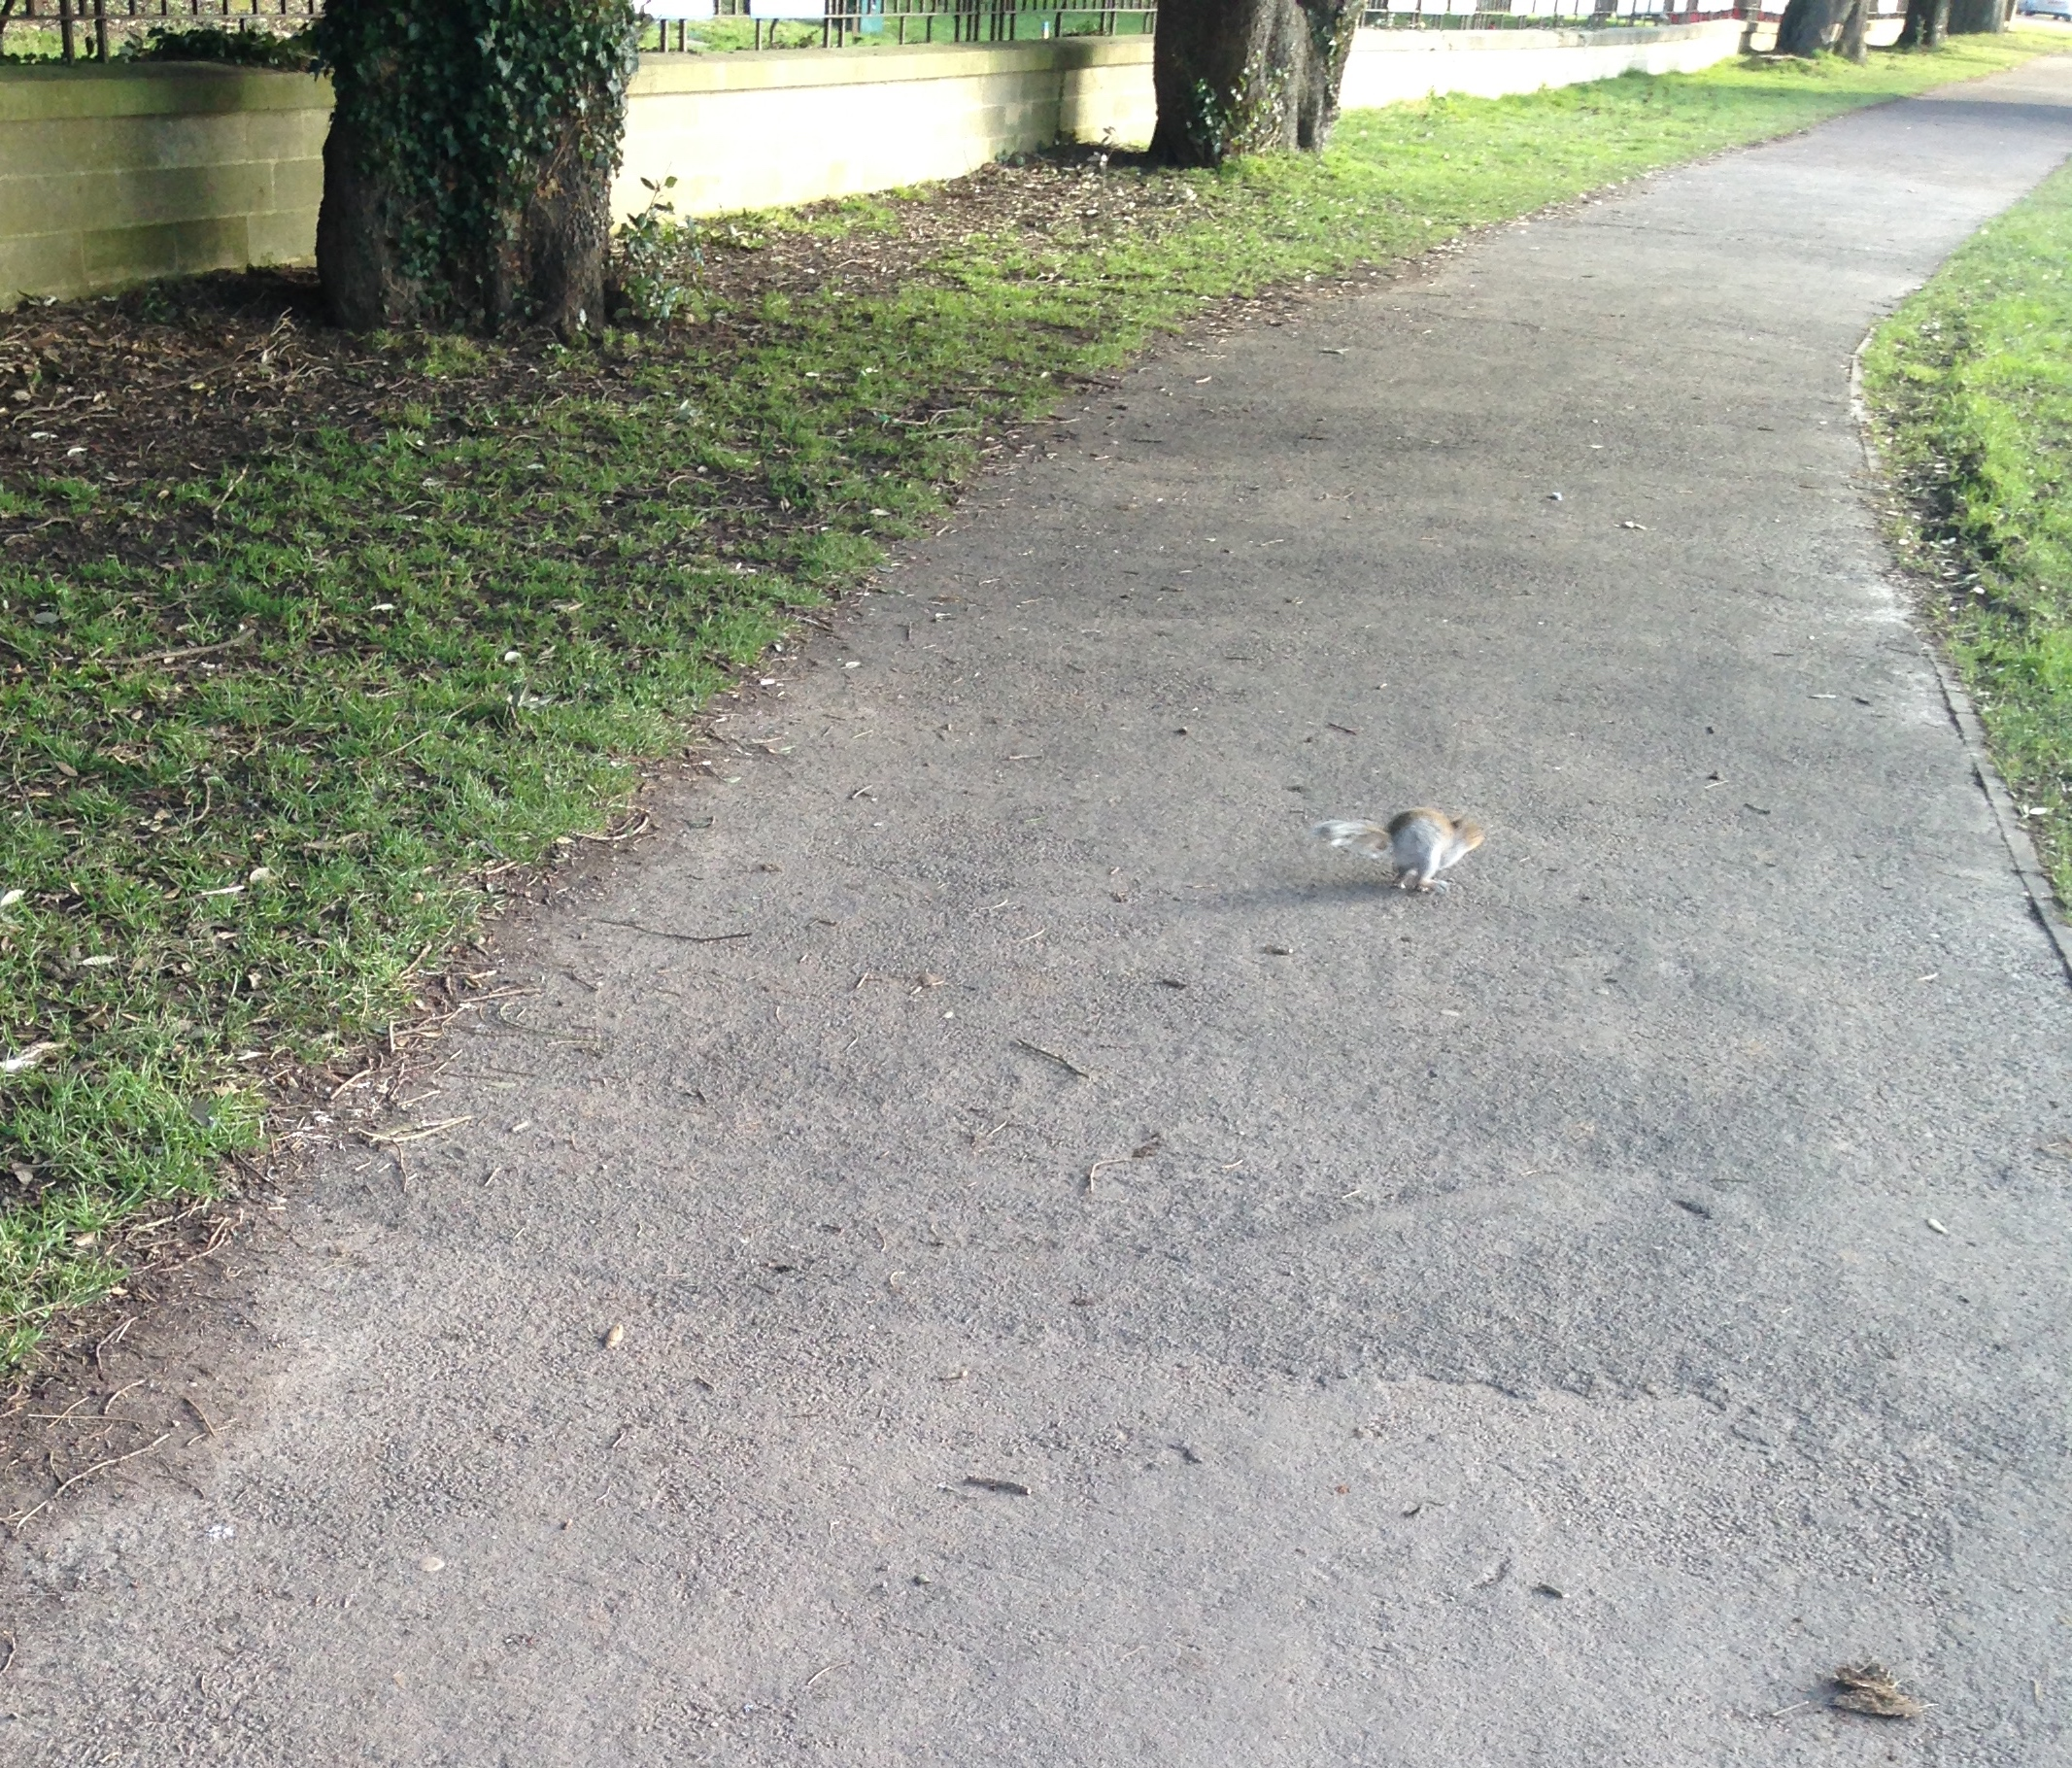 A pesky squirrel flees the scene of the crime #thuglife